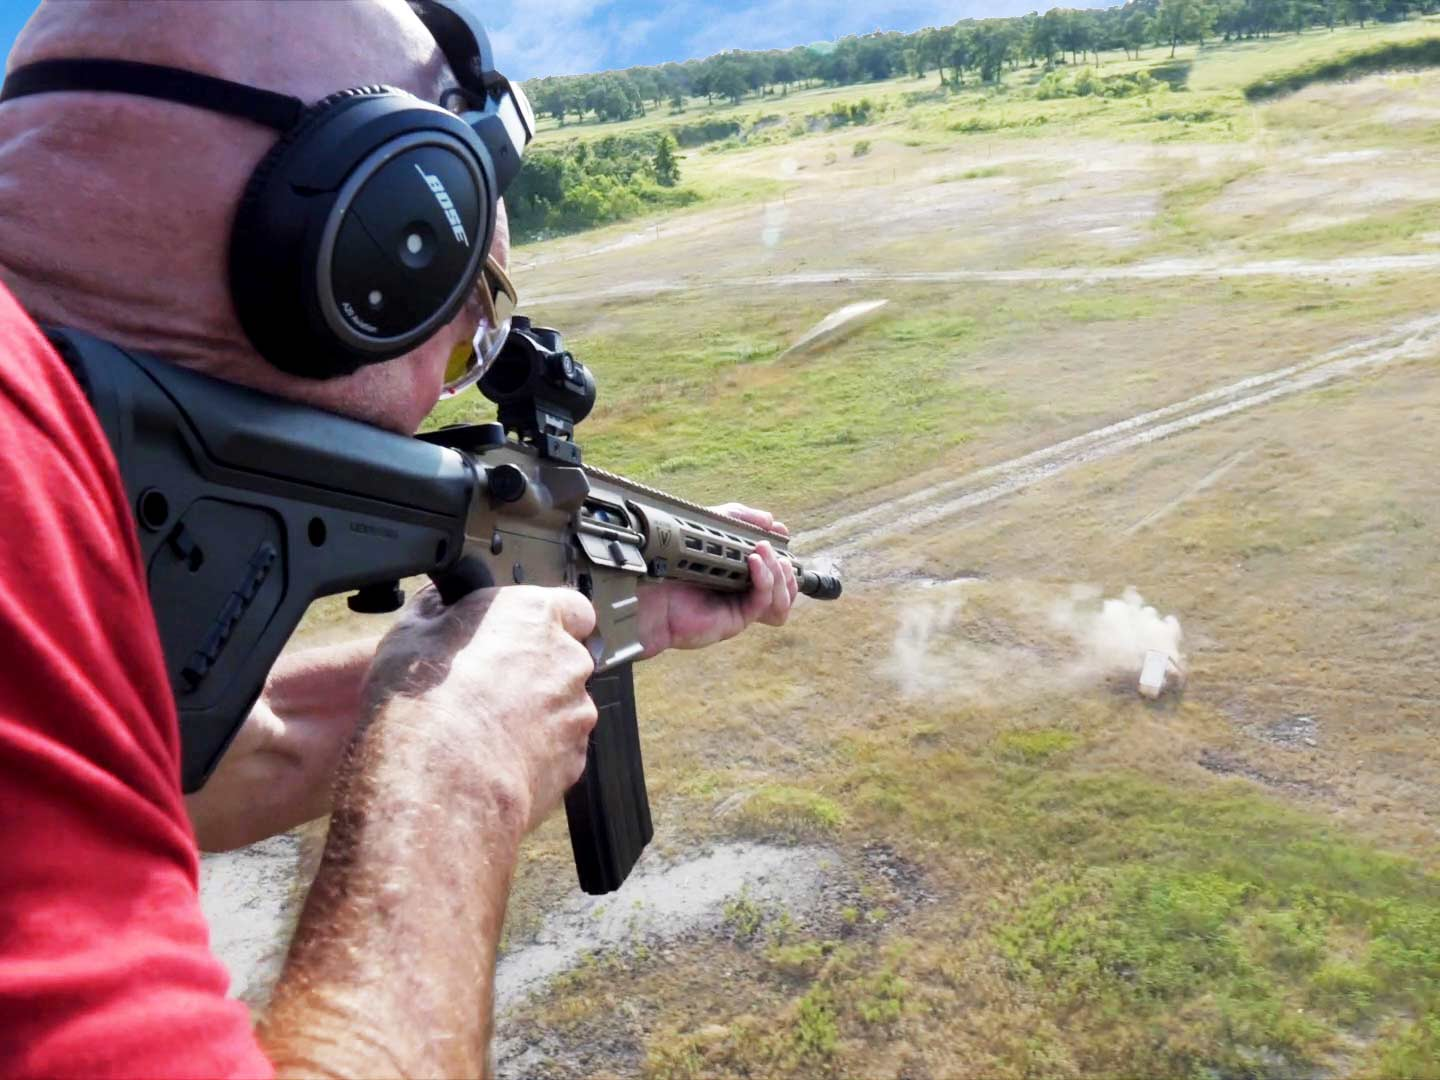 Shooting with a Negative Lead from a Chopper